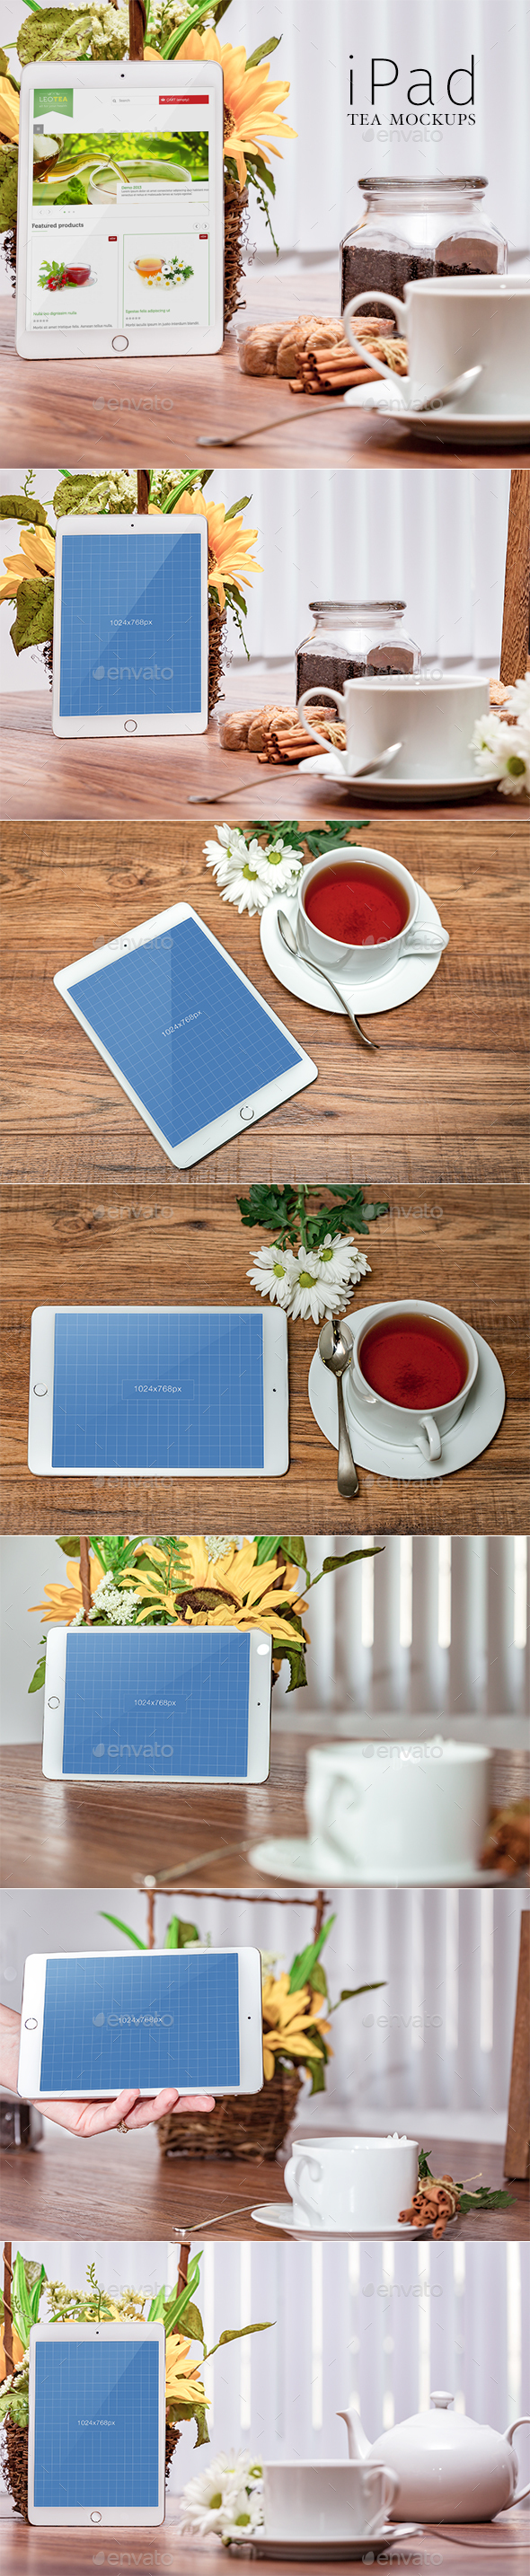 iPad Tea-Mockups - Mobile Displays